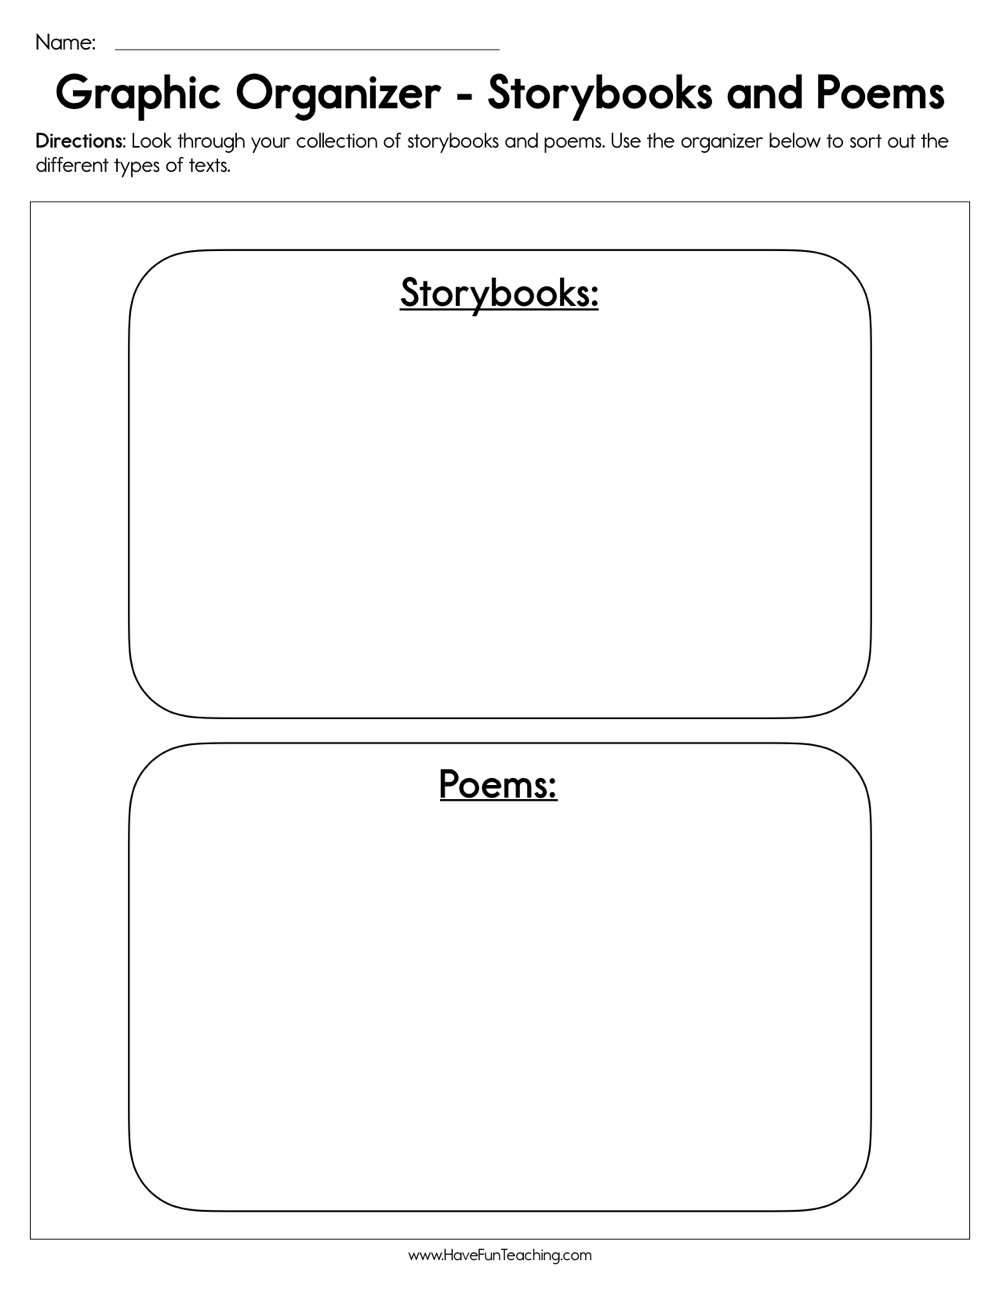 Resources | Have Fun Teaching - Free Printable Compare And Contrast Graphic Organizer